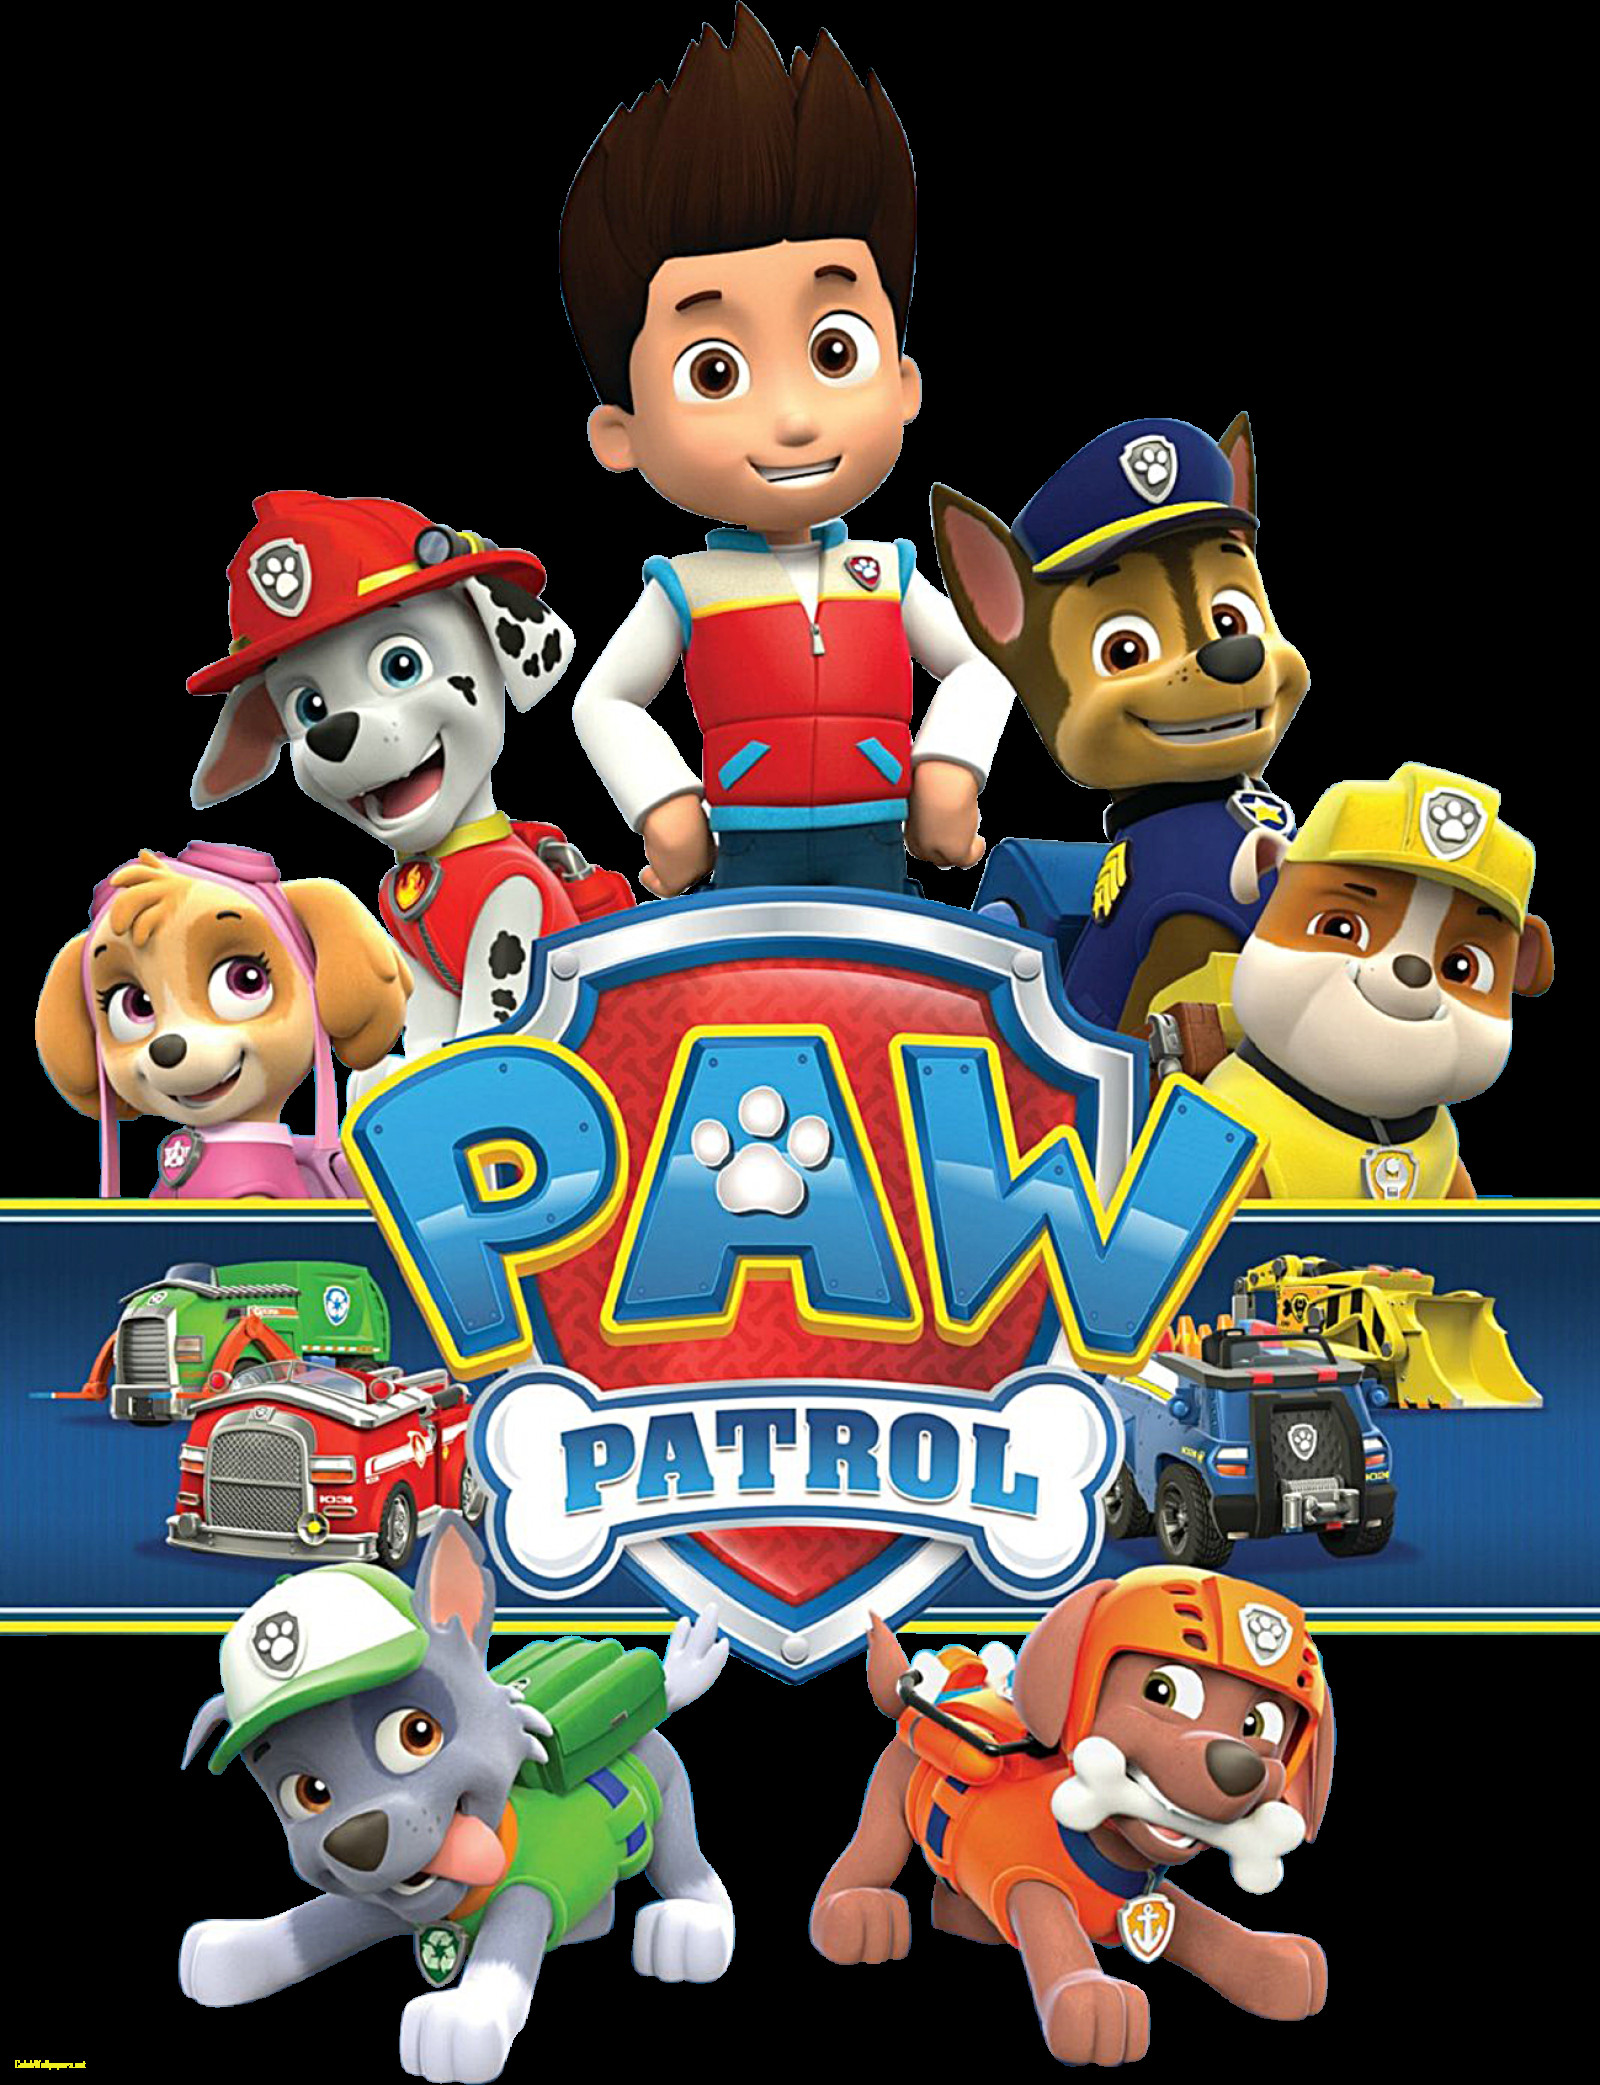 Skye Paw Patrol Android Wallpapers - Wallpaper Cave